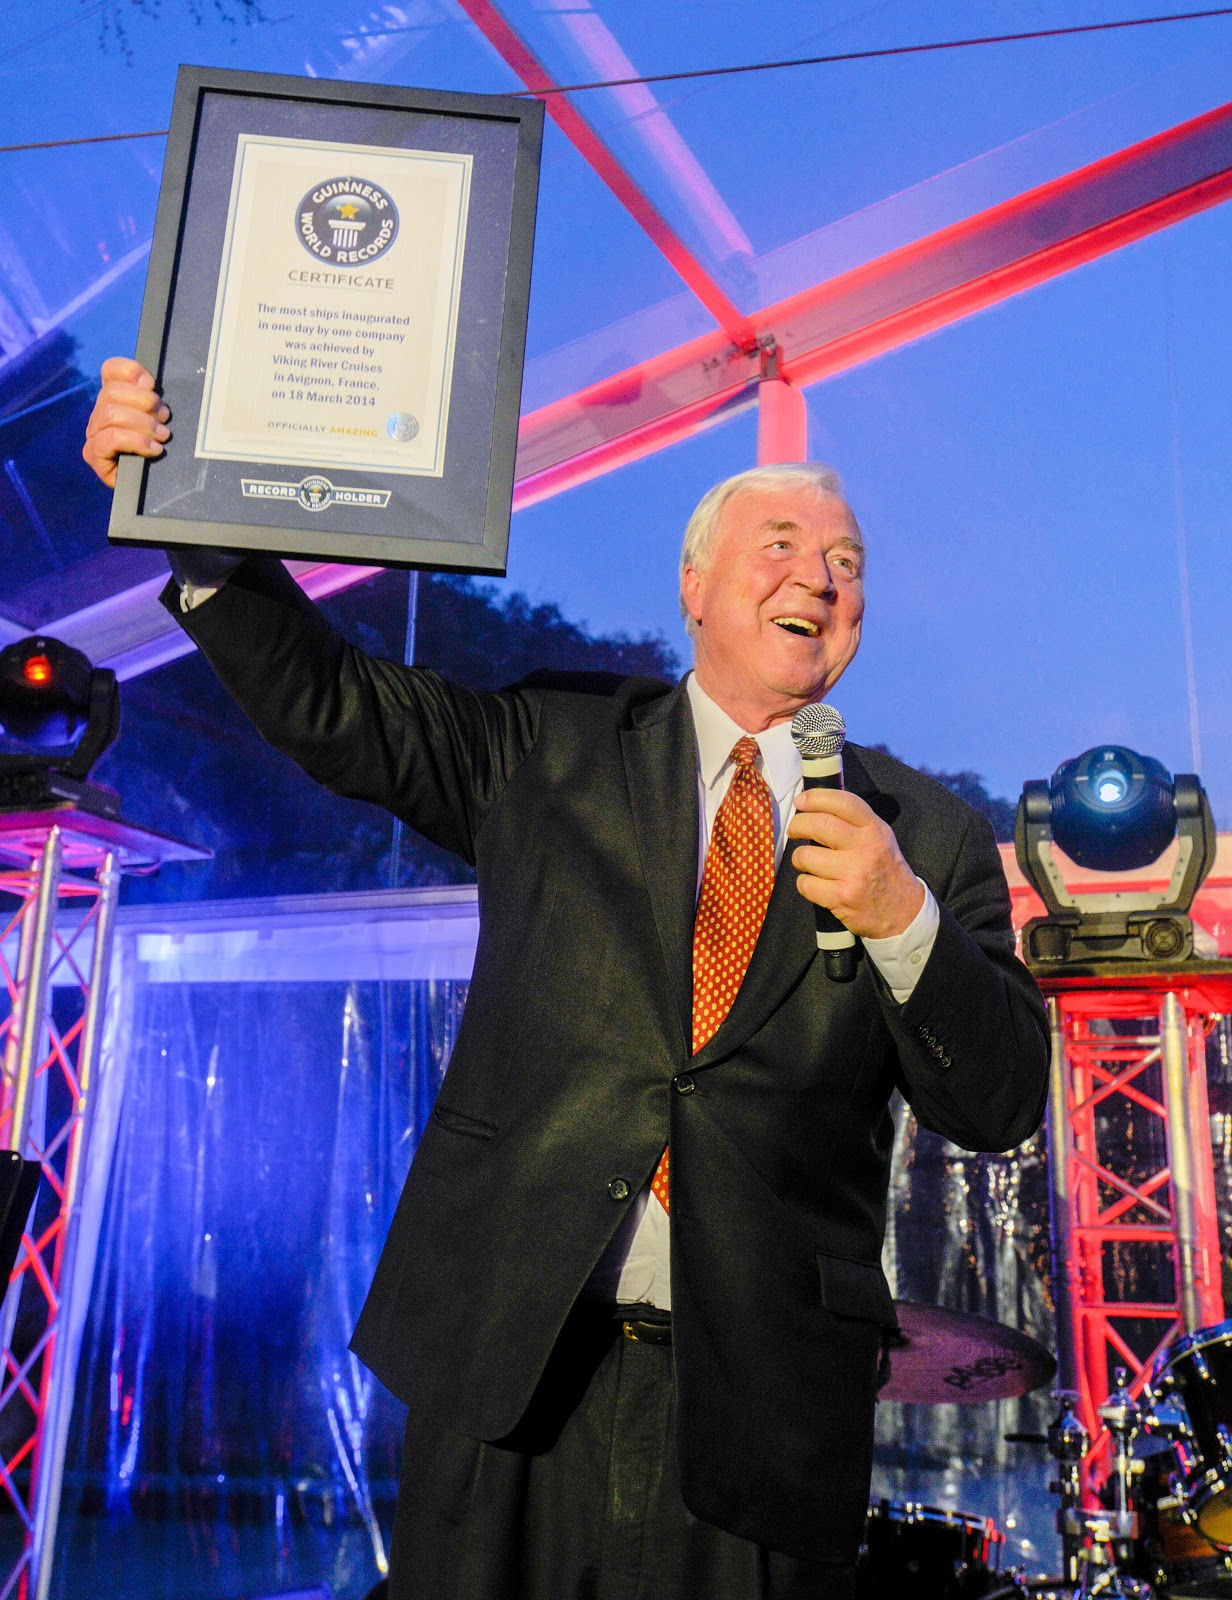 Viking Chairman Torstein Hagen proudly displays his Guinness World Records certificate. Photo: Courtesy of Viking Cruises. Unauthorized use is prohibited.